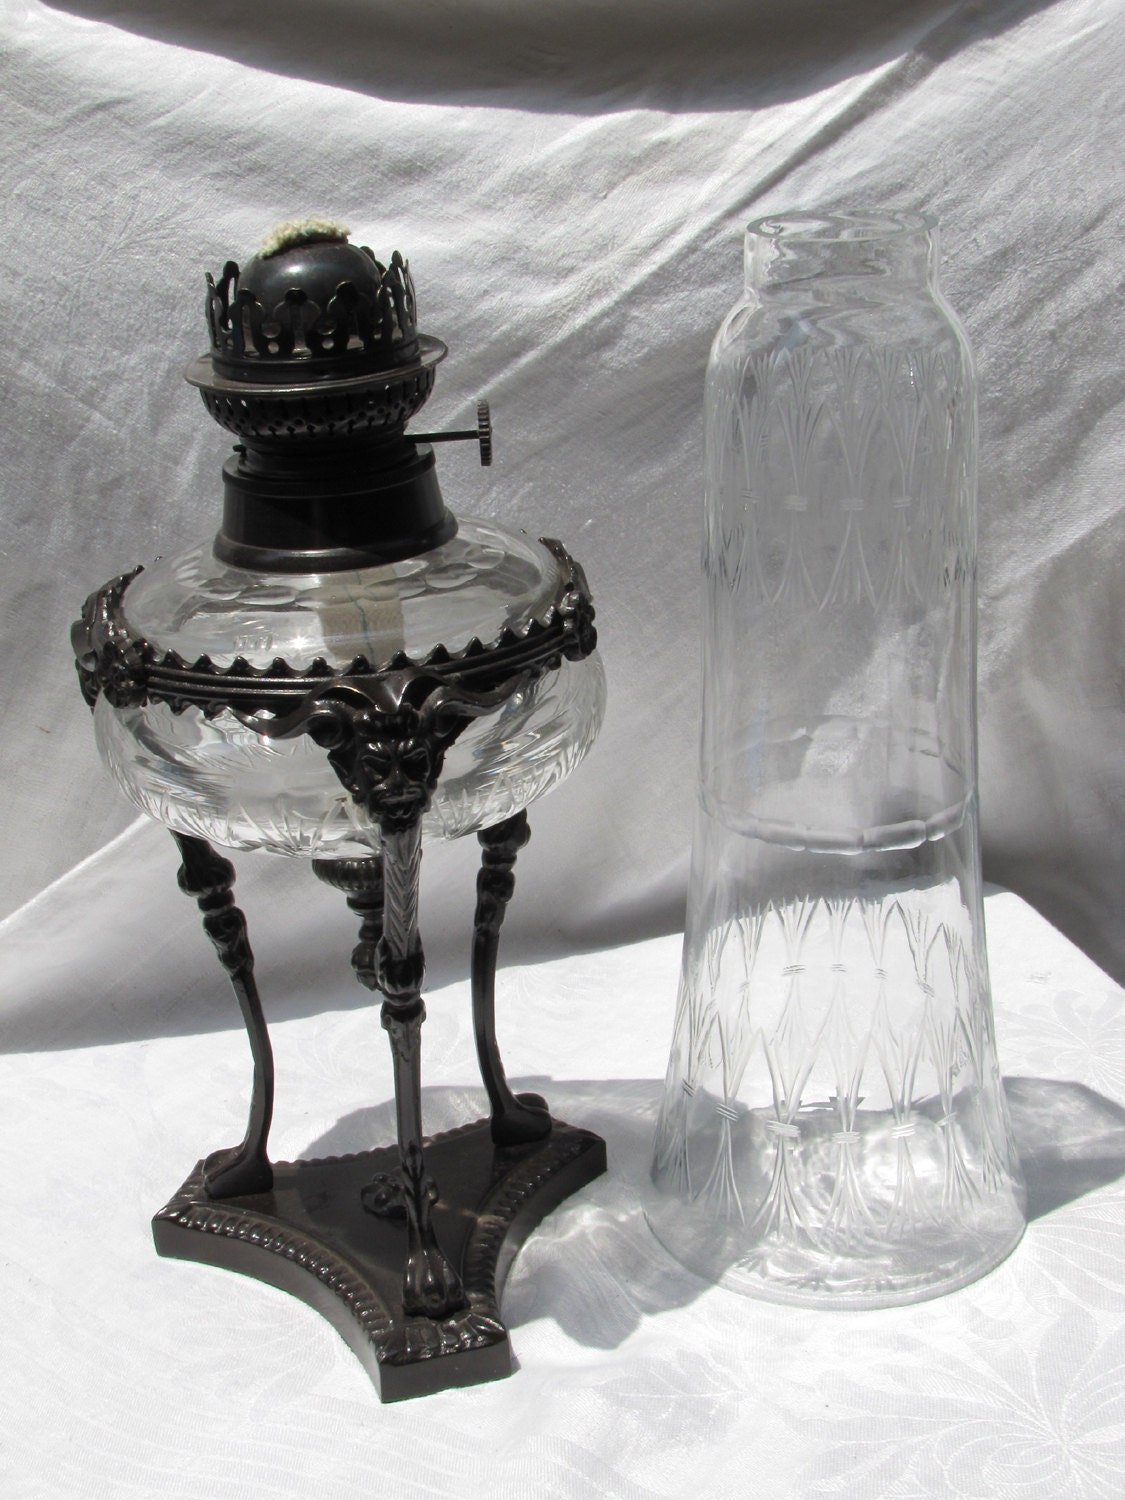 Enormous Cut Crystal And Gargoyle Oil Lamp With Heavy Metal